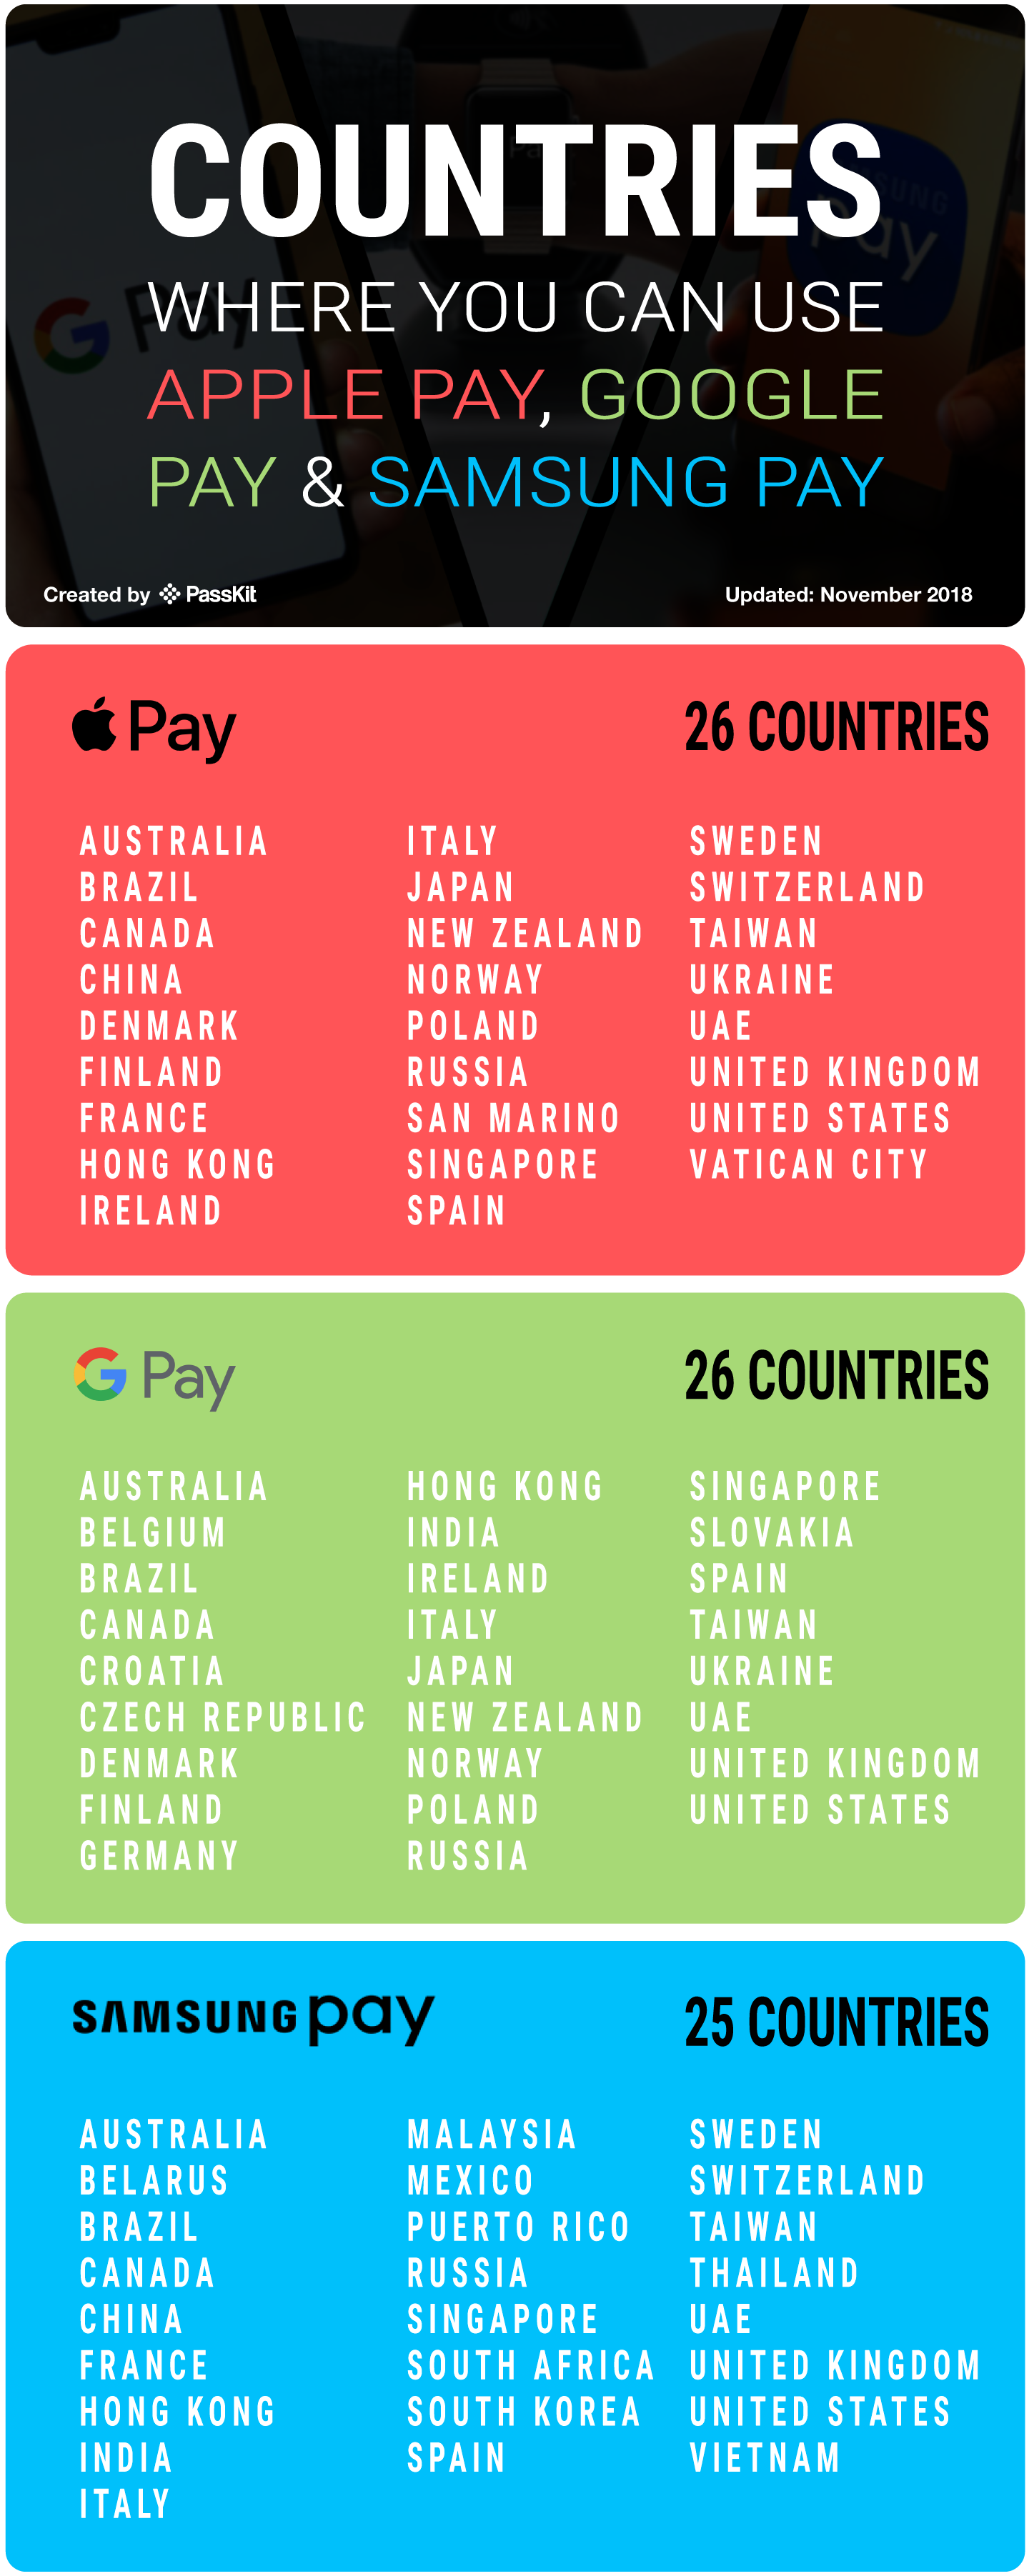 Countries that Support Apple Pay, Google Pay and Samsung Pay